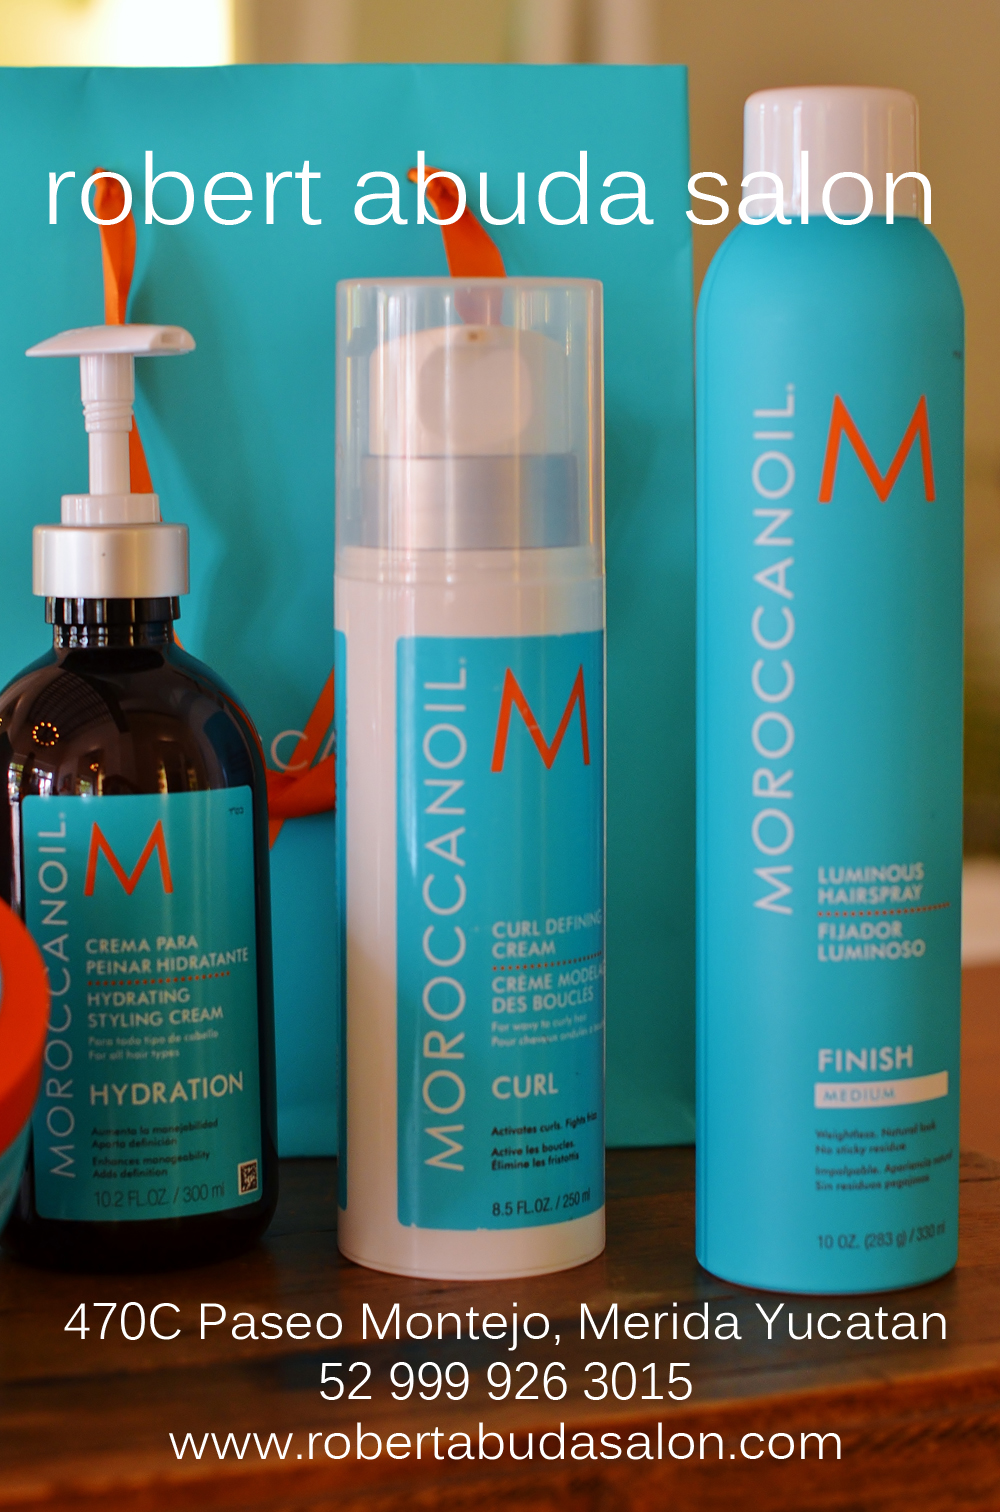 moroccan oil salon de belleza merida 2